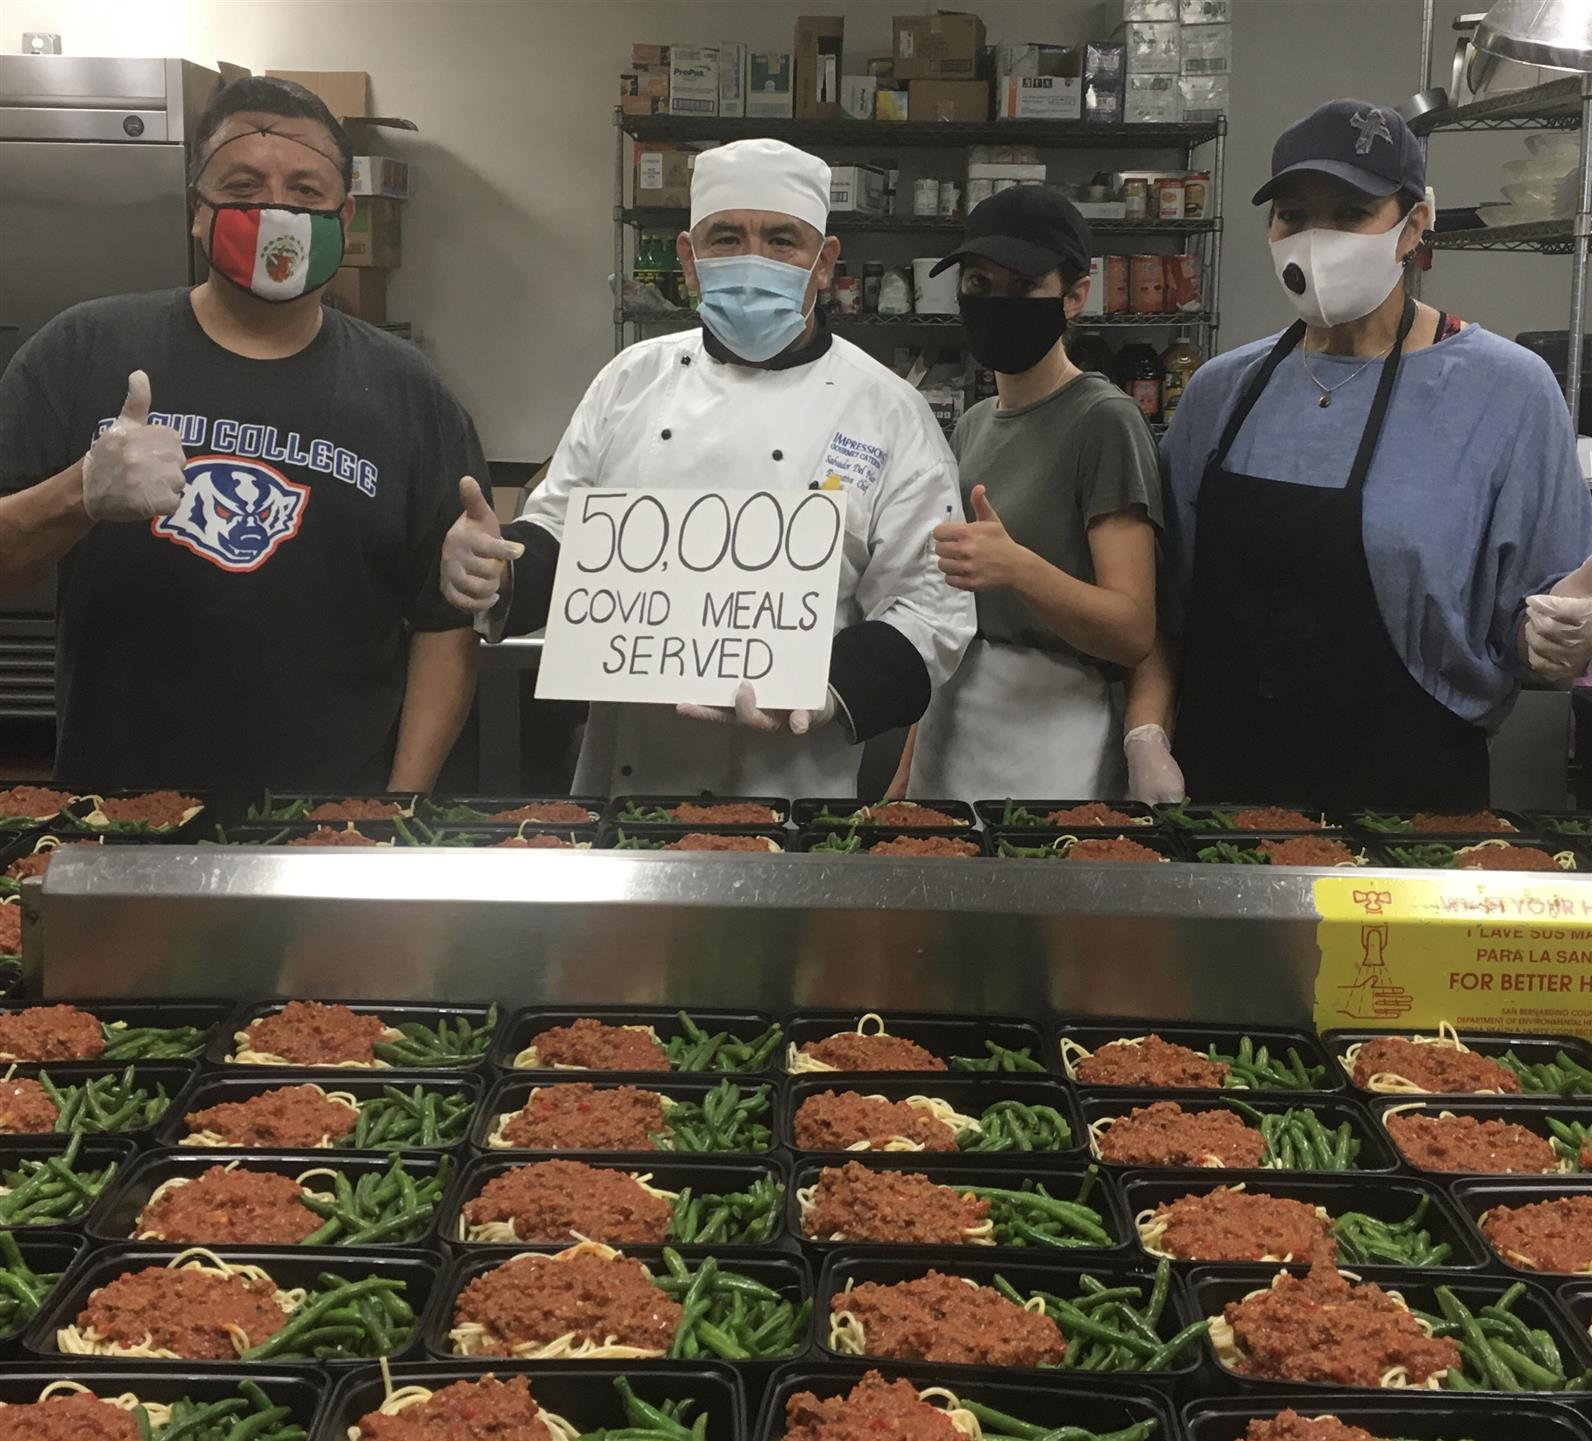 50,000 Covid 19 meals served to the patients and staff at the Fairplex Hotel/Hospital Pomona